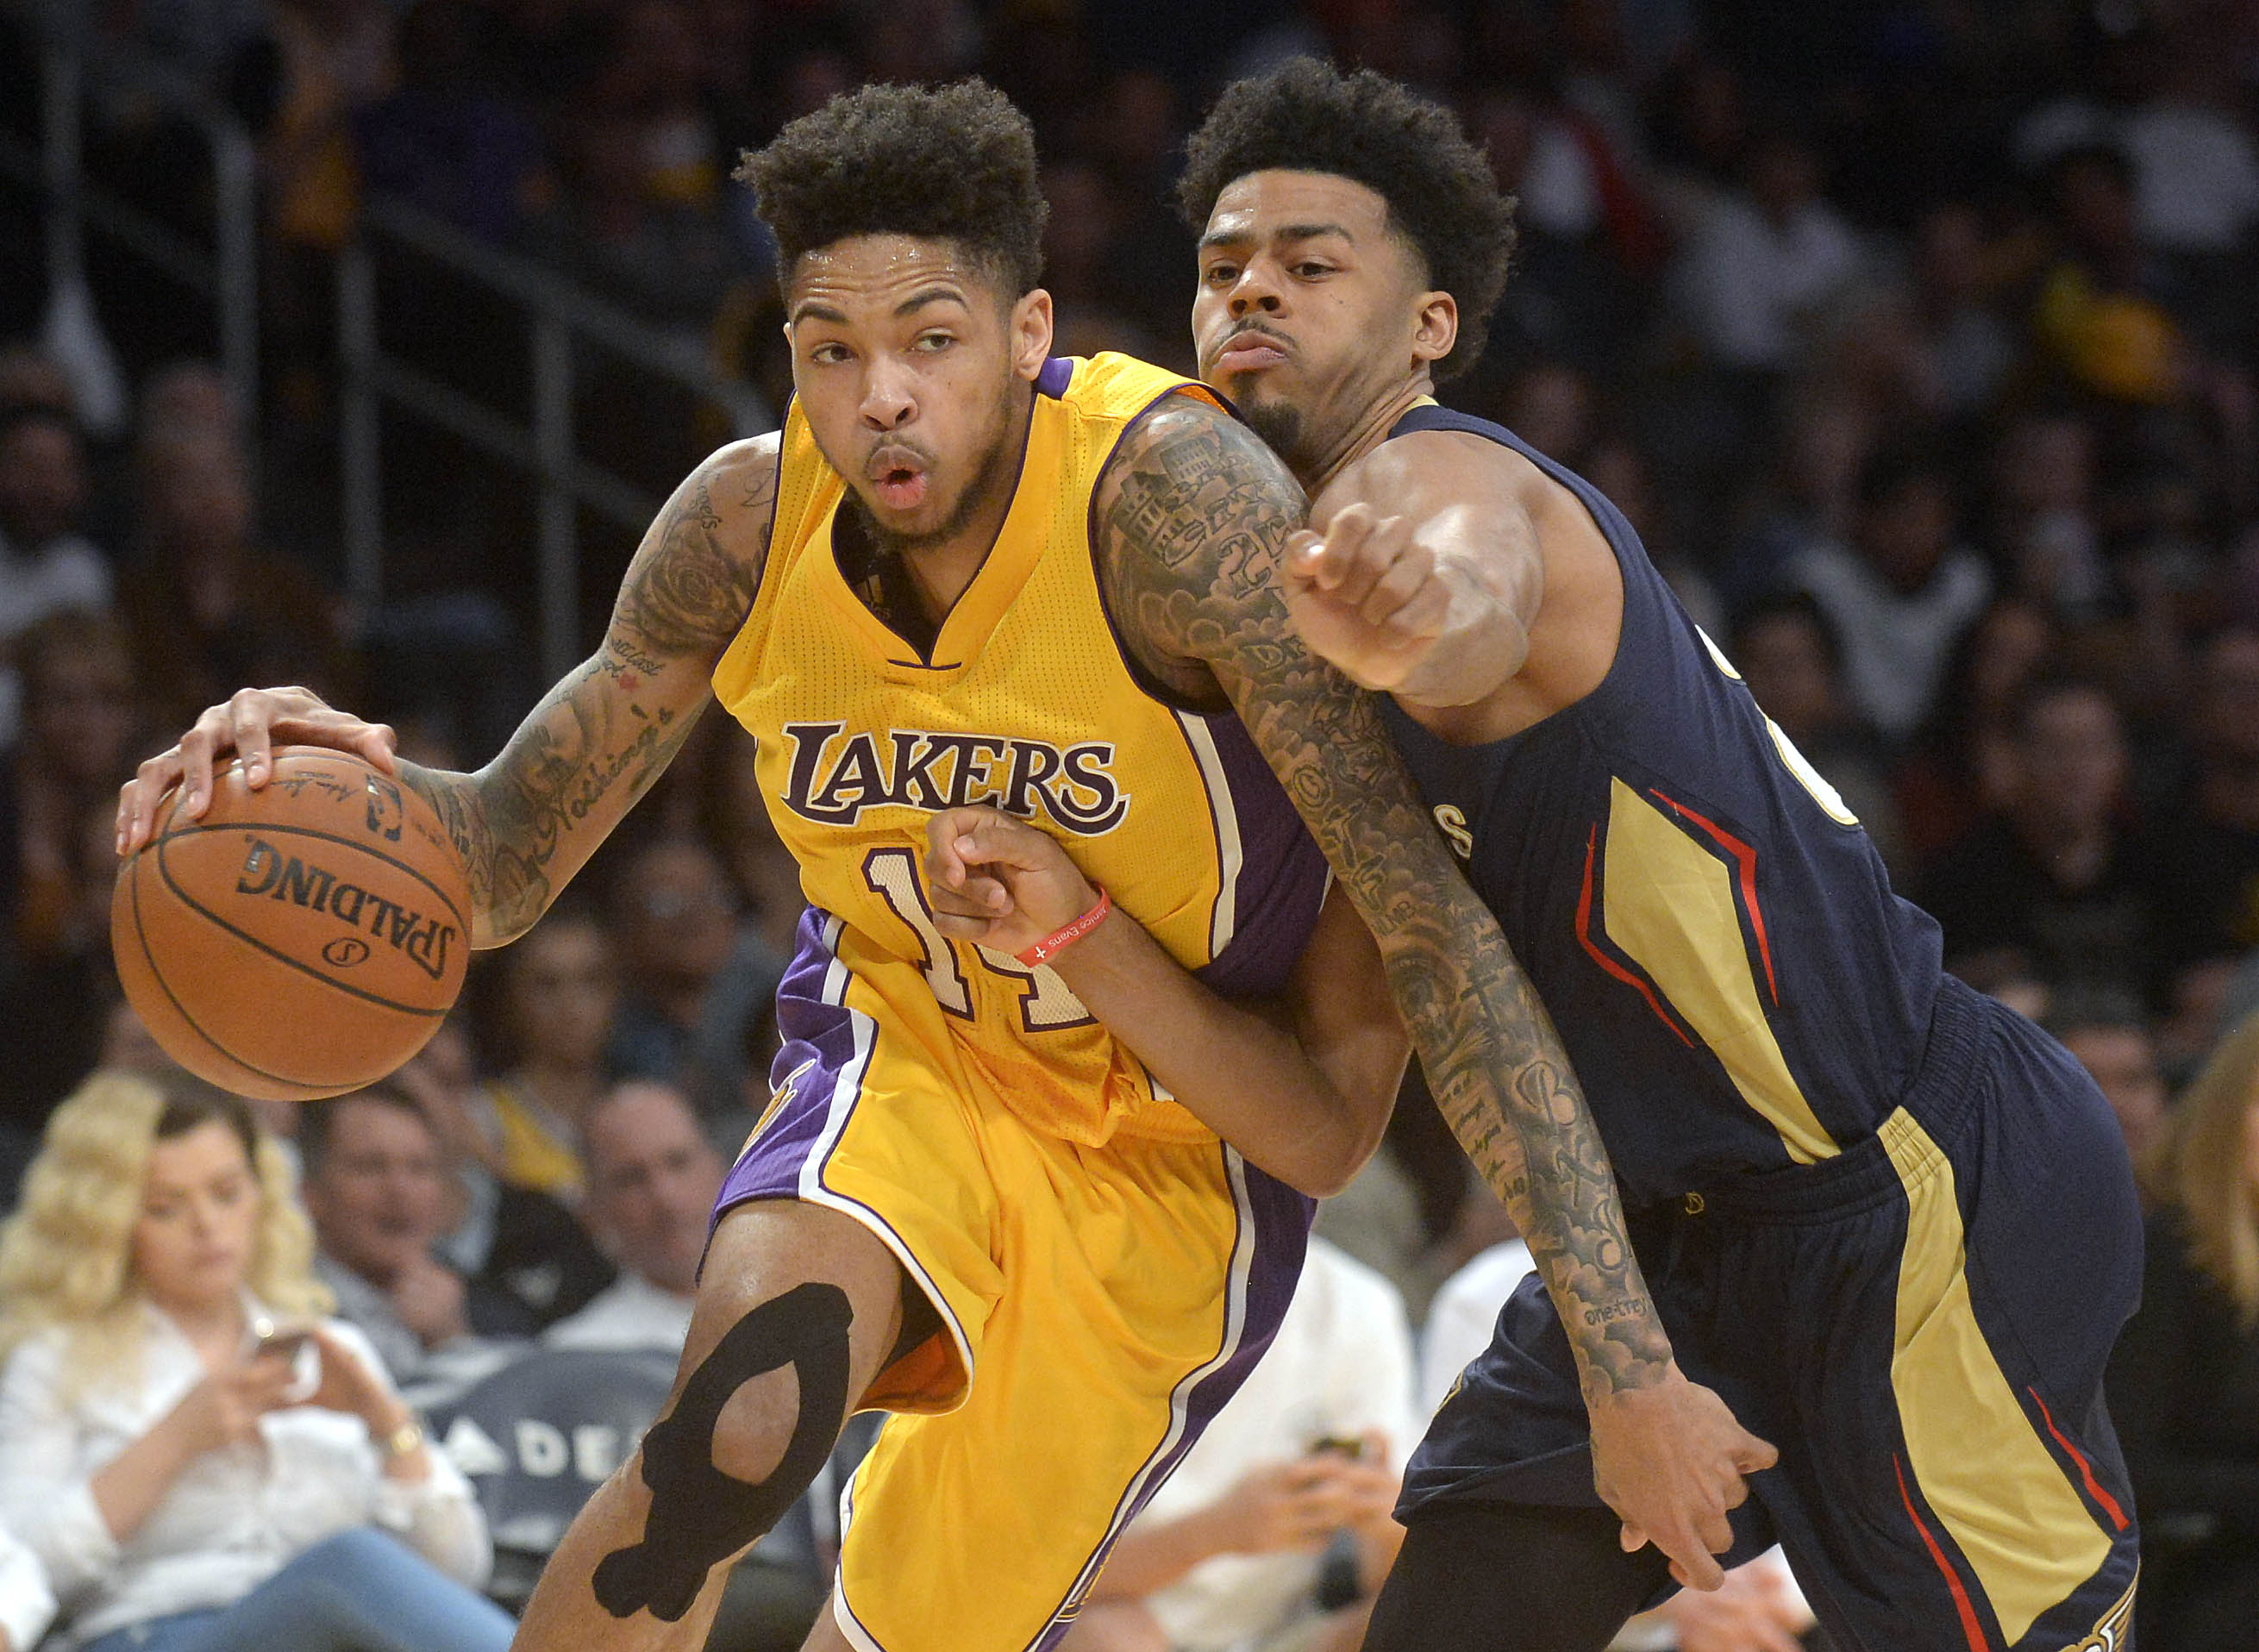 10007137-nba-new-orleans-pelicans-at-los-angeles-lakers-1